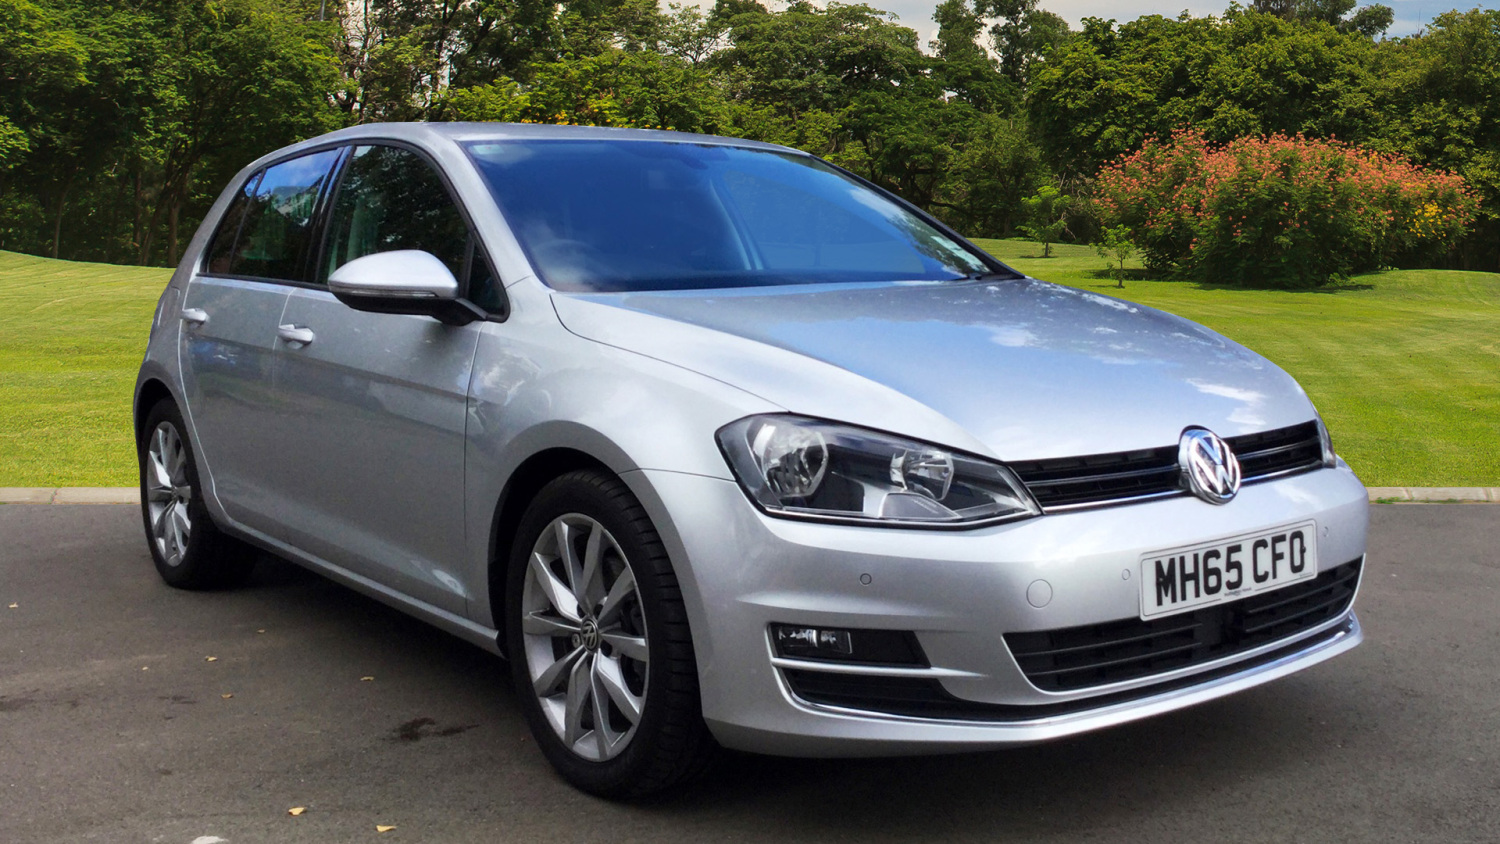 used volkswagen golf 1 6 tdi 110 gt 5dr diesel hatchback for sale bristol street motors. Black Bedroom Furniture Sets. Home Design Ideas